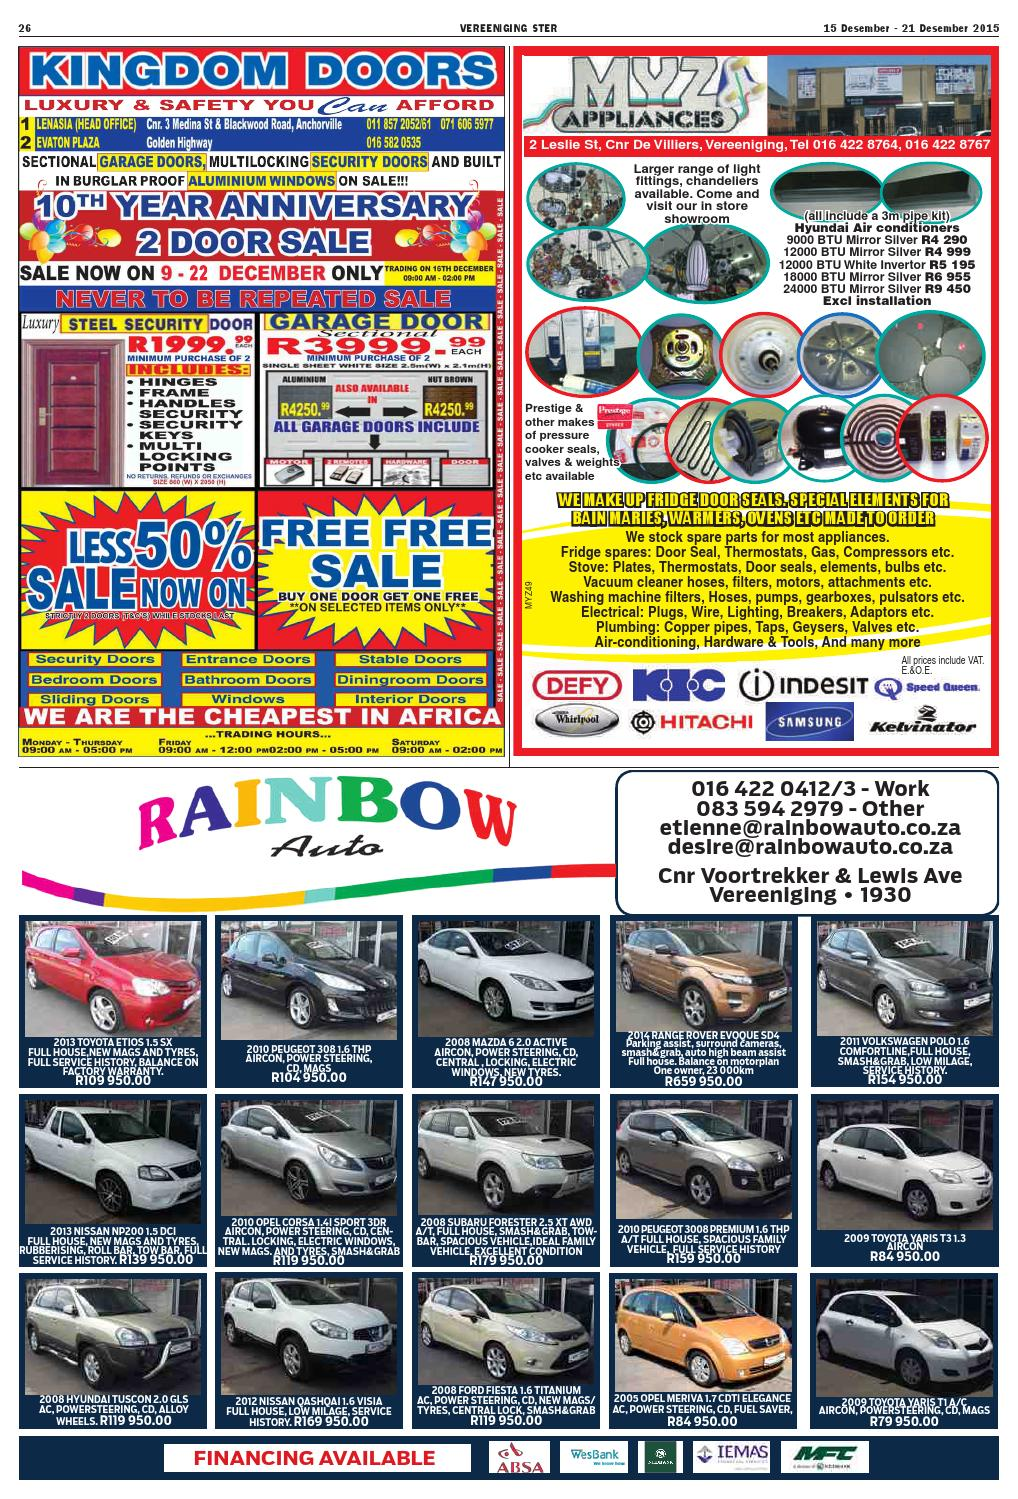 Vereeniging Ster 15 21 December 2015 By Mooivaal Media Issuu Ford Fiesta Tow Bars